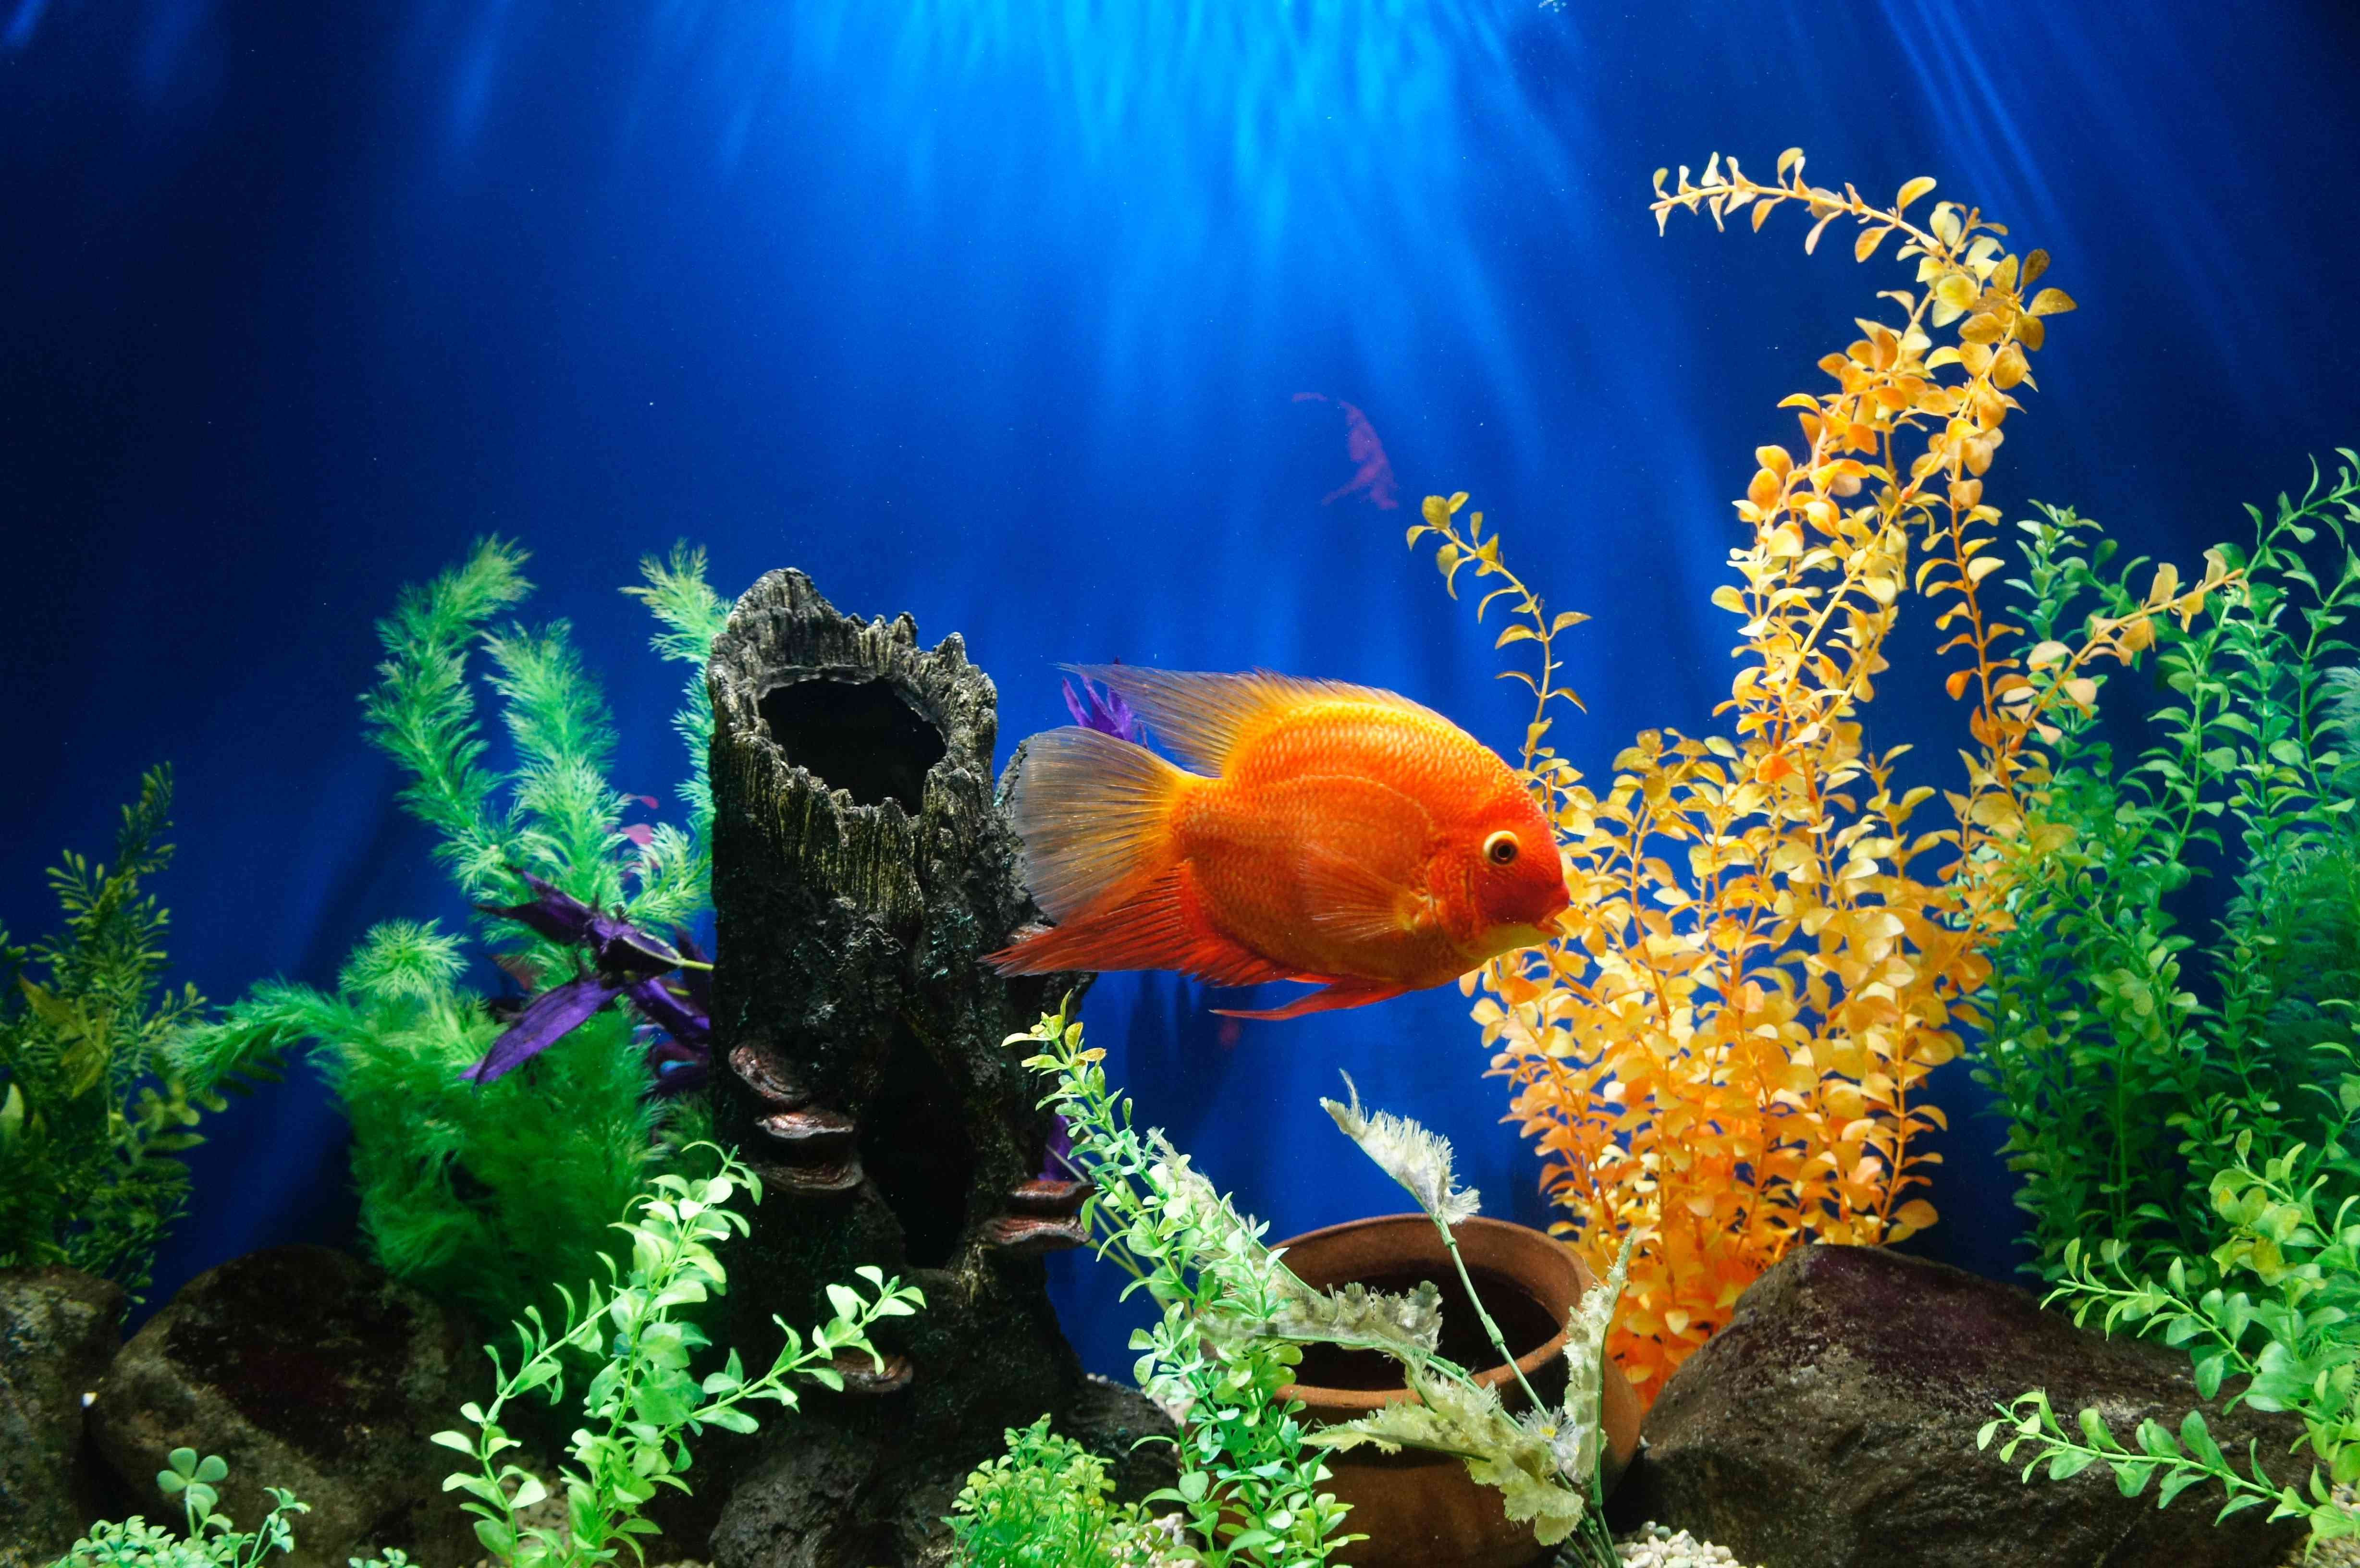 goldfish in an aquarium with colorful plants